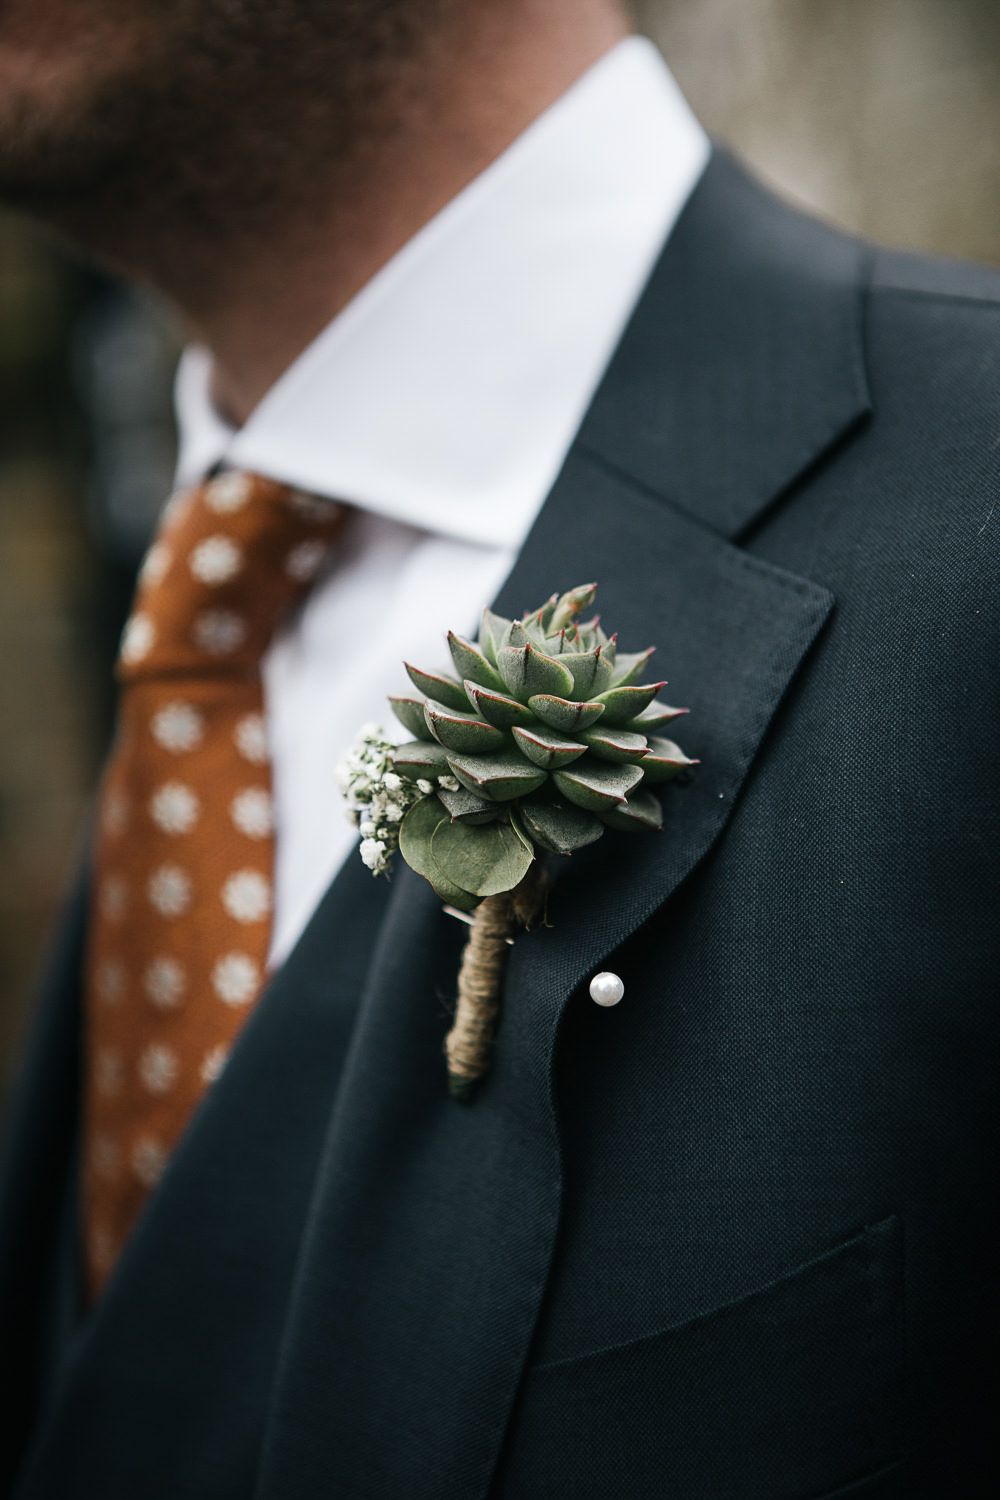 Groom Groomsmen Suits Orange Tie Polka Dot Spotty Succulent Buttonhole Orleans House Gallery Wedding My Beautiful Bride Photography